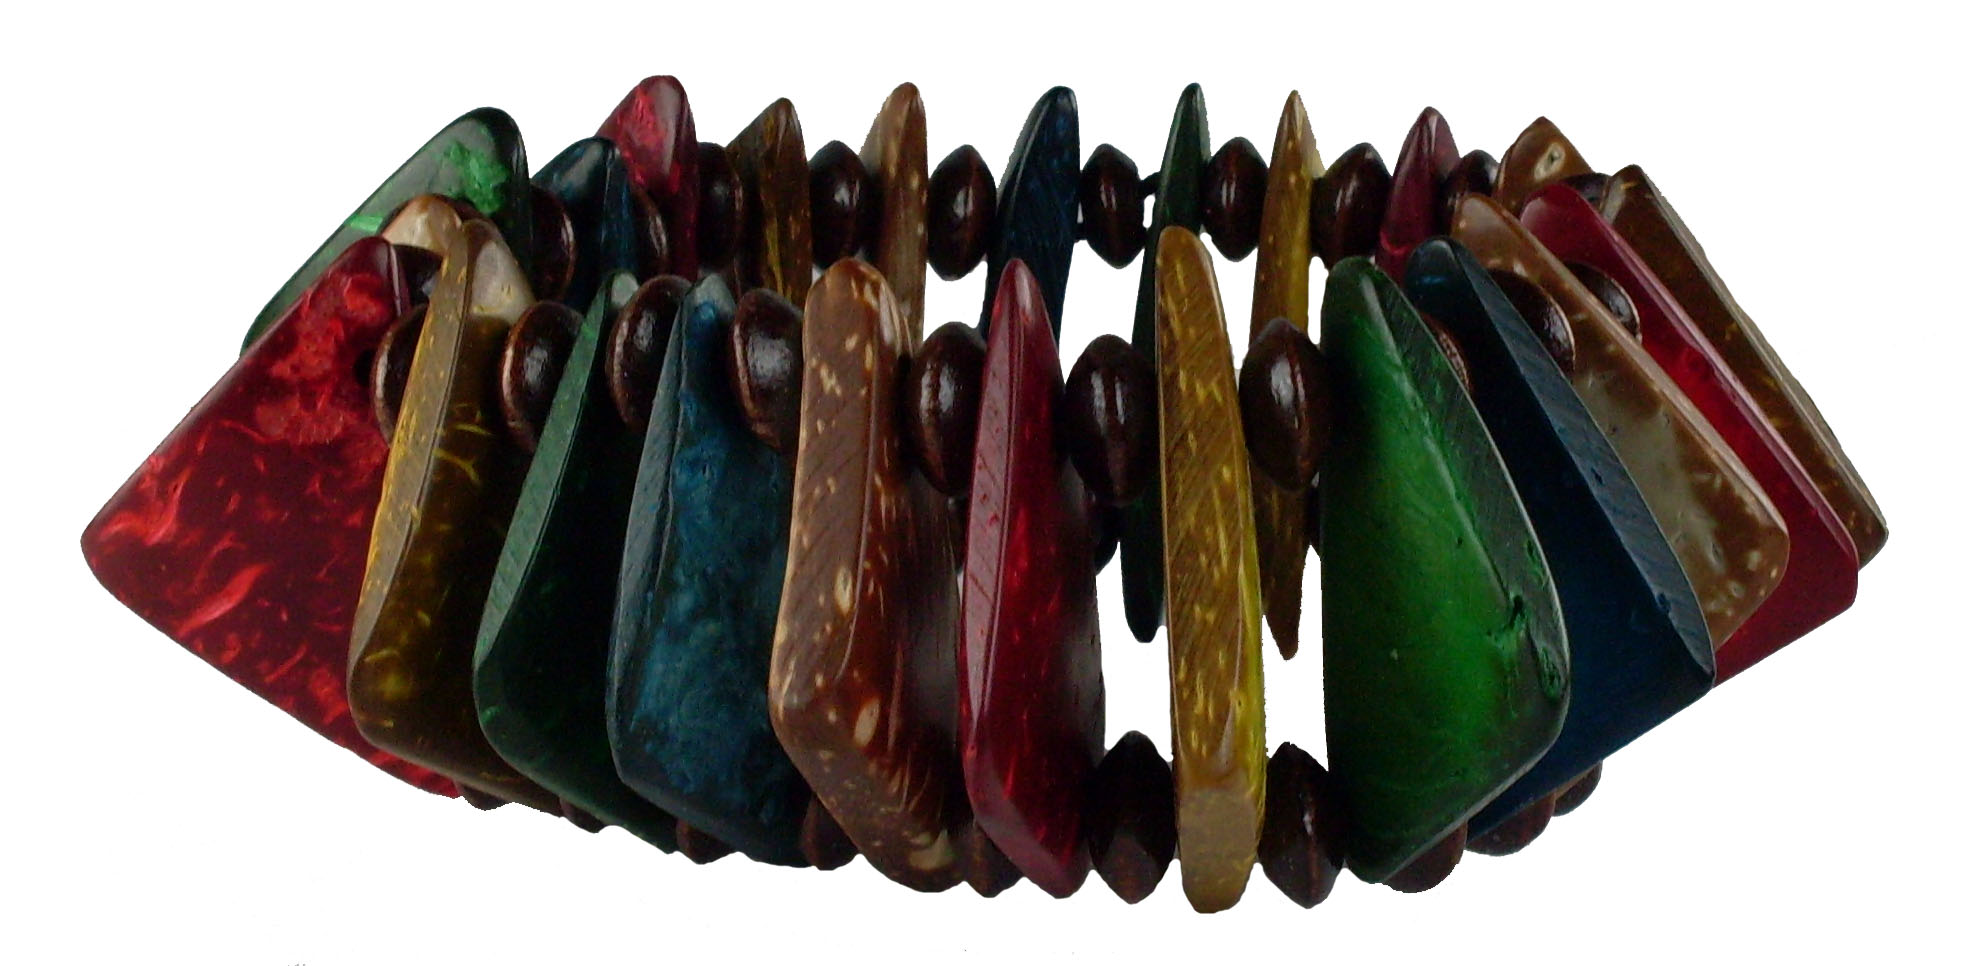 Island Colored Coco Bead Bracelet #6